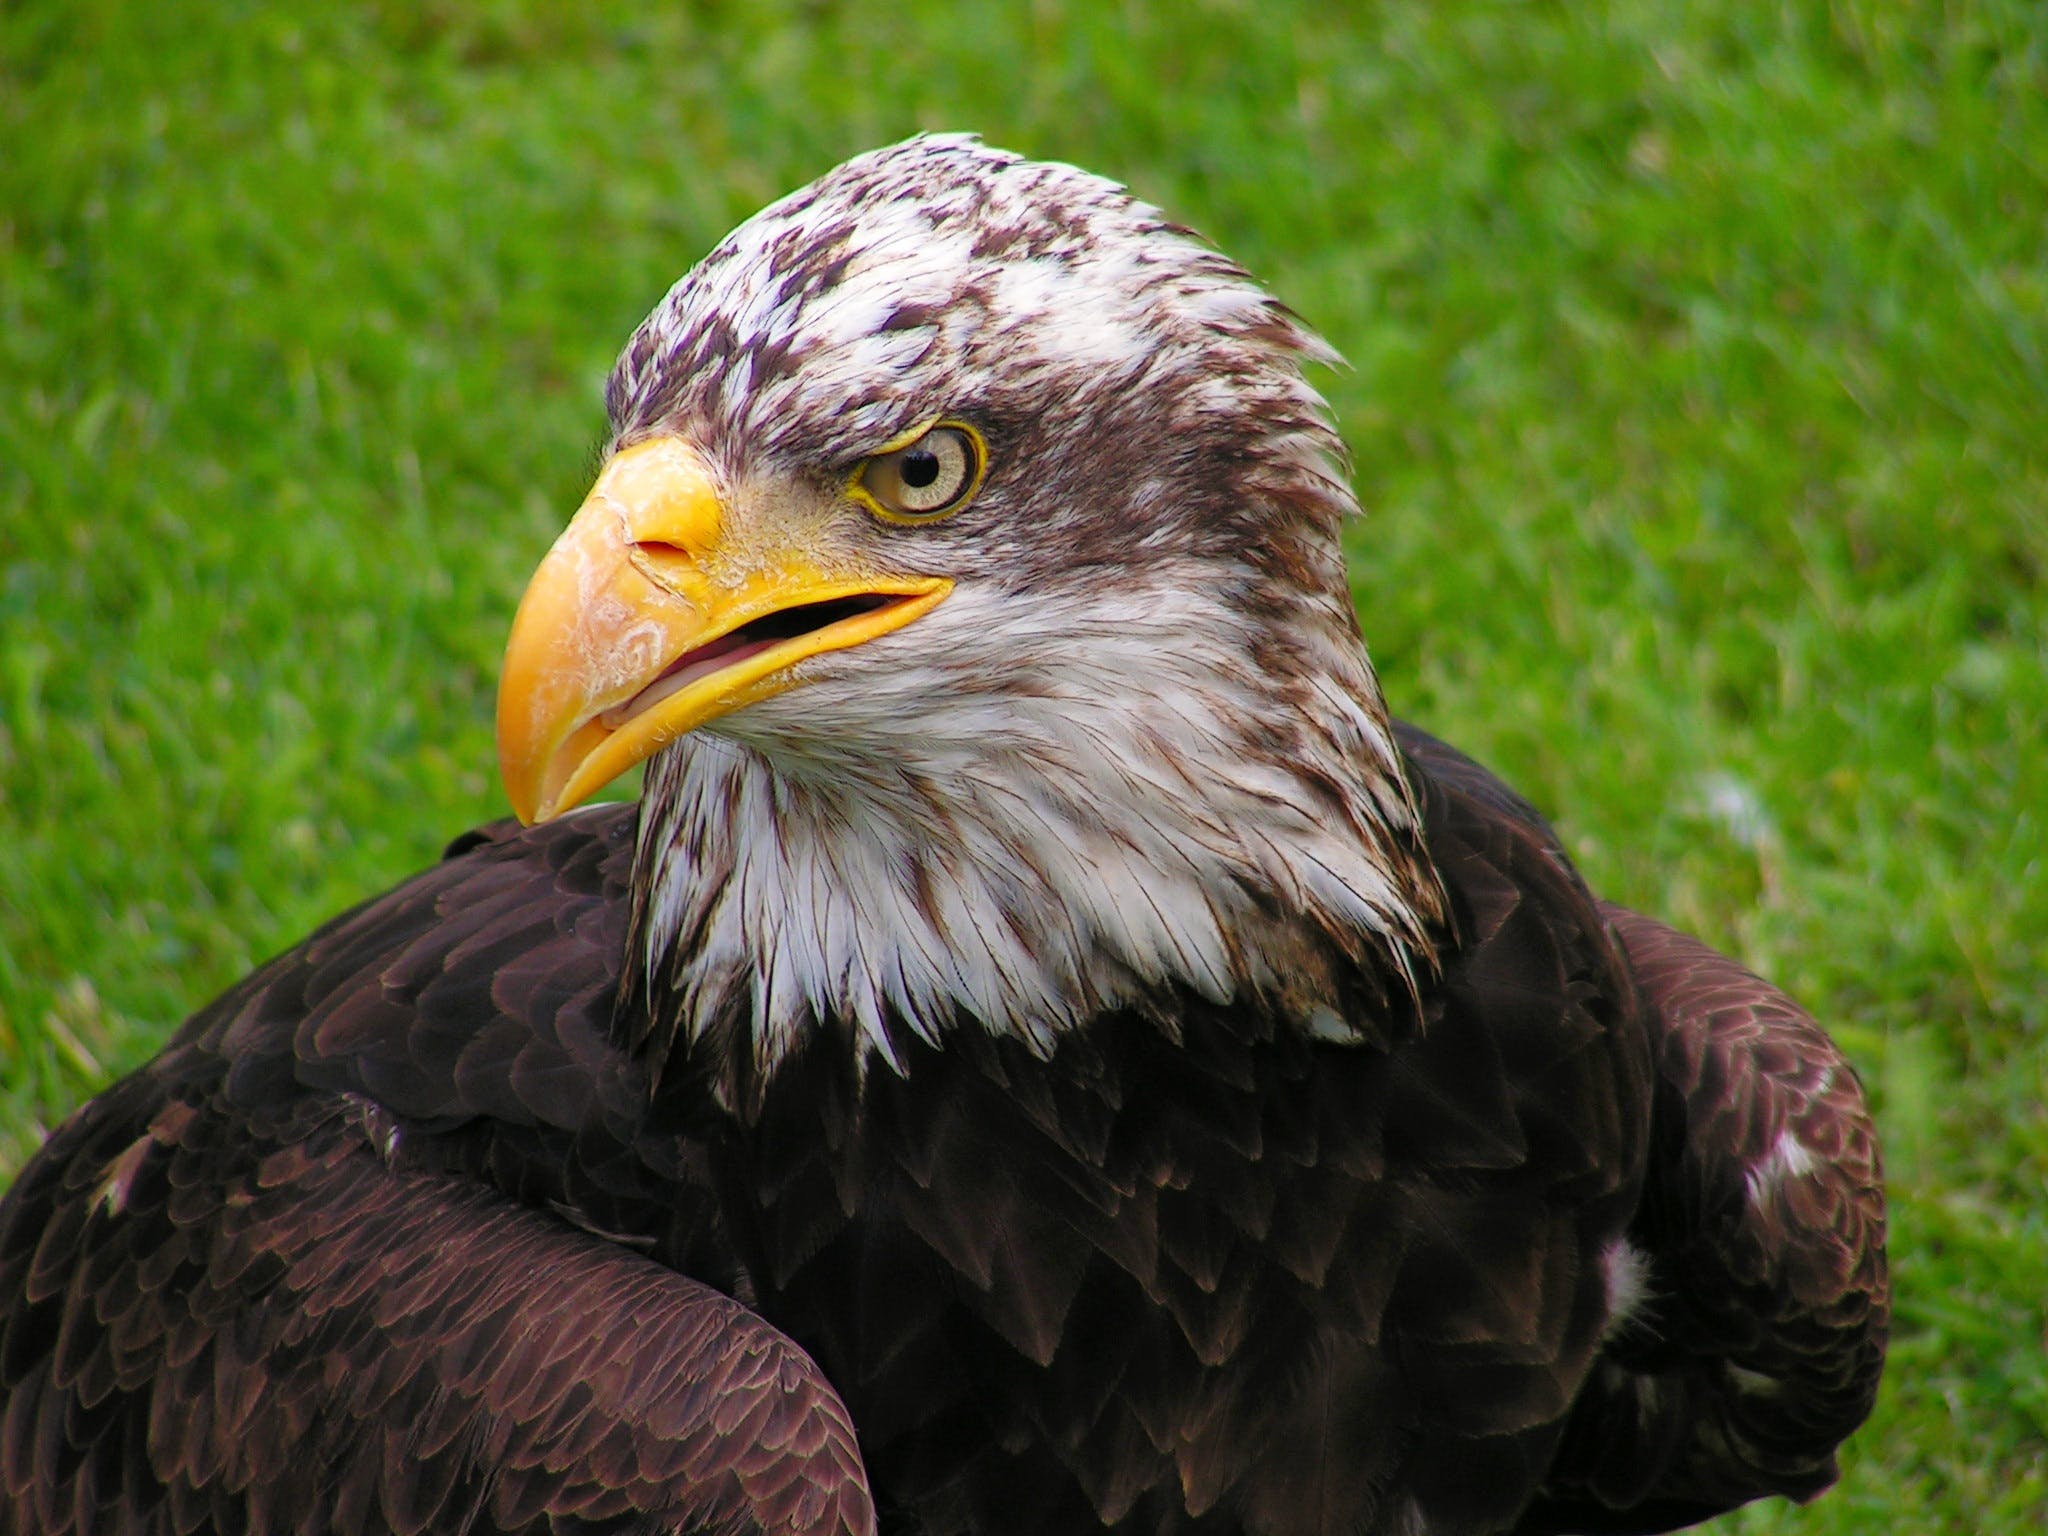 Shallow Focus of Eagle